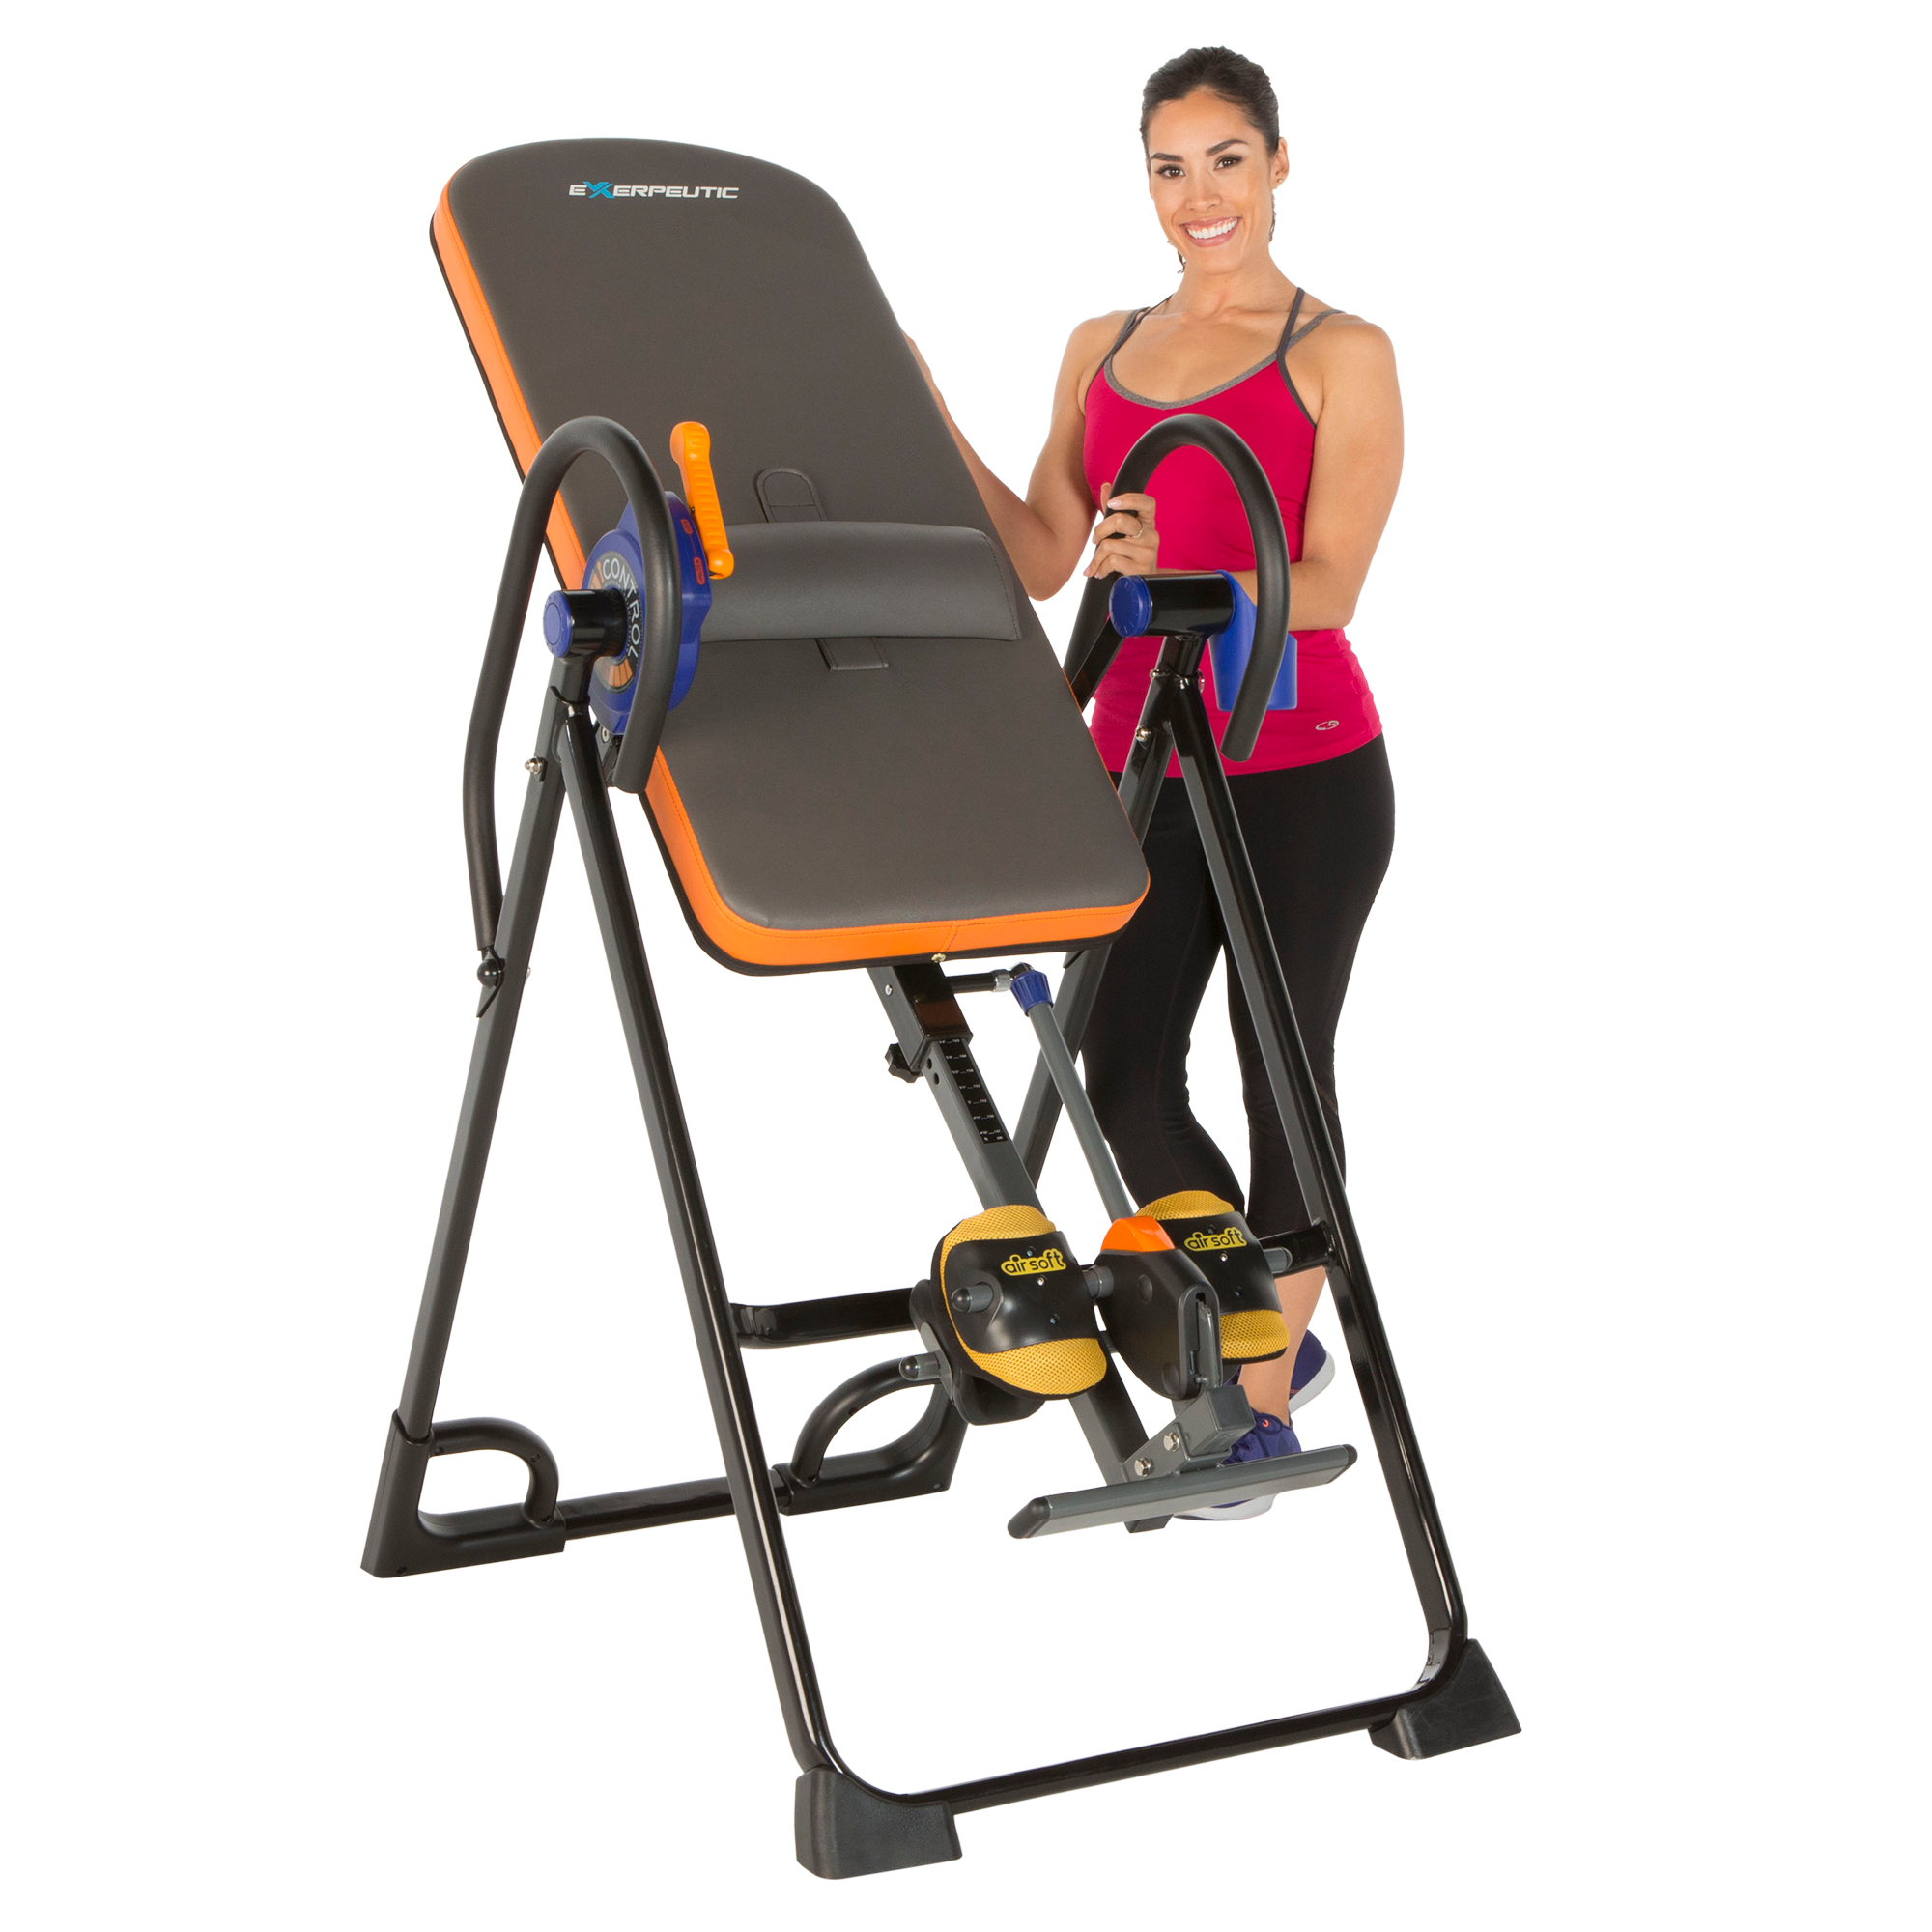 EXERPEUTIC 975SL 'All Inclusive' Extra Capacity Inversion Table with Air Soft Ankle Cushions, SURELOCK and iControl Systems